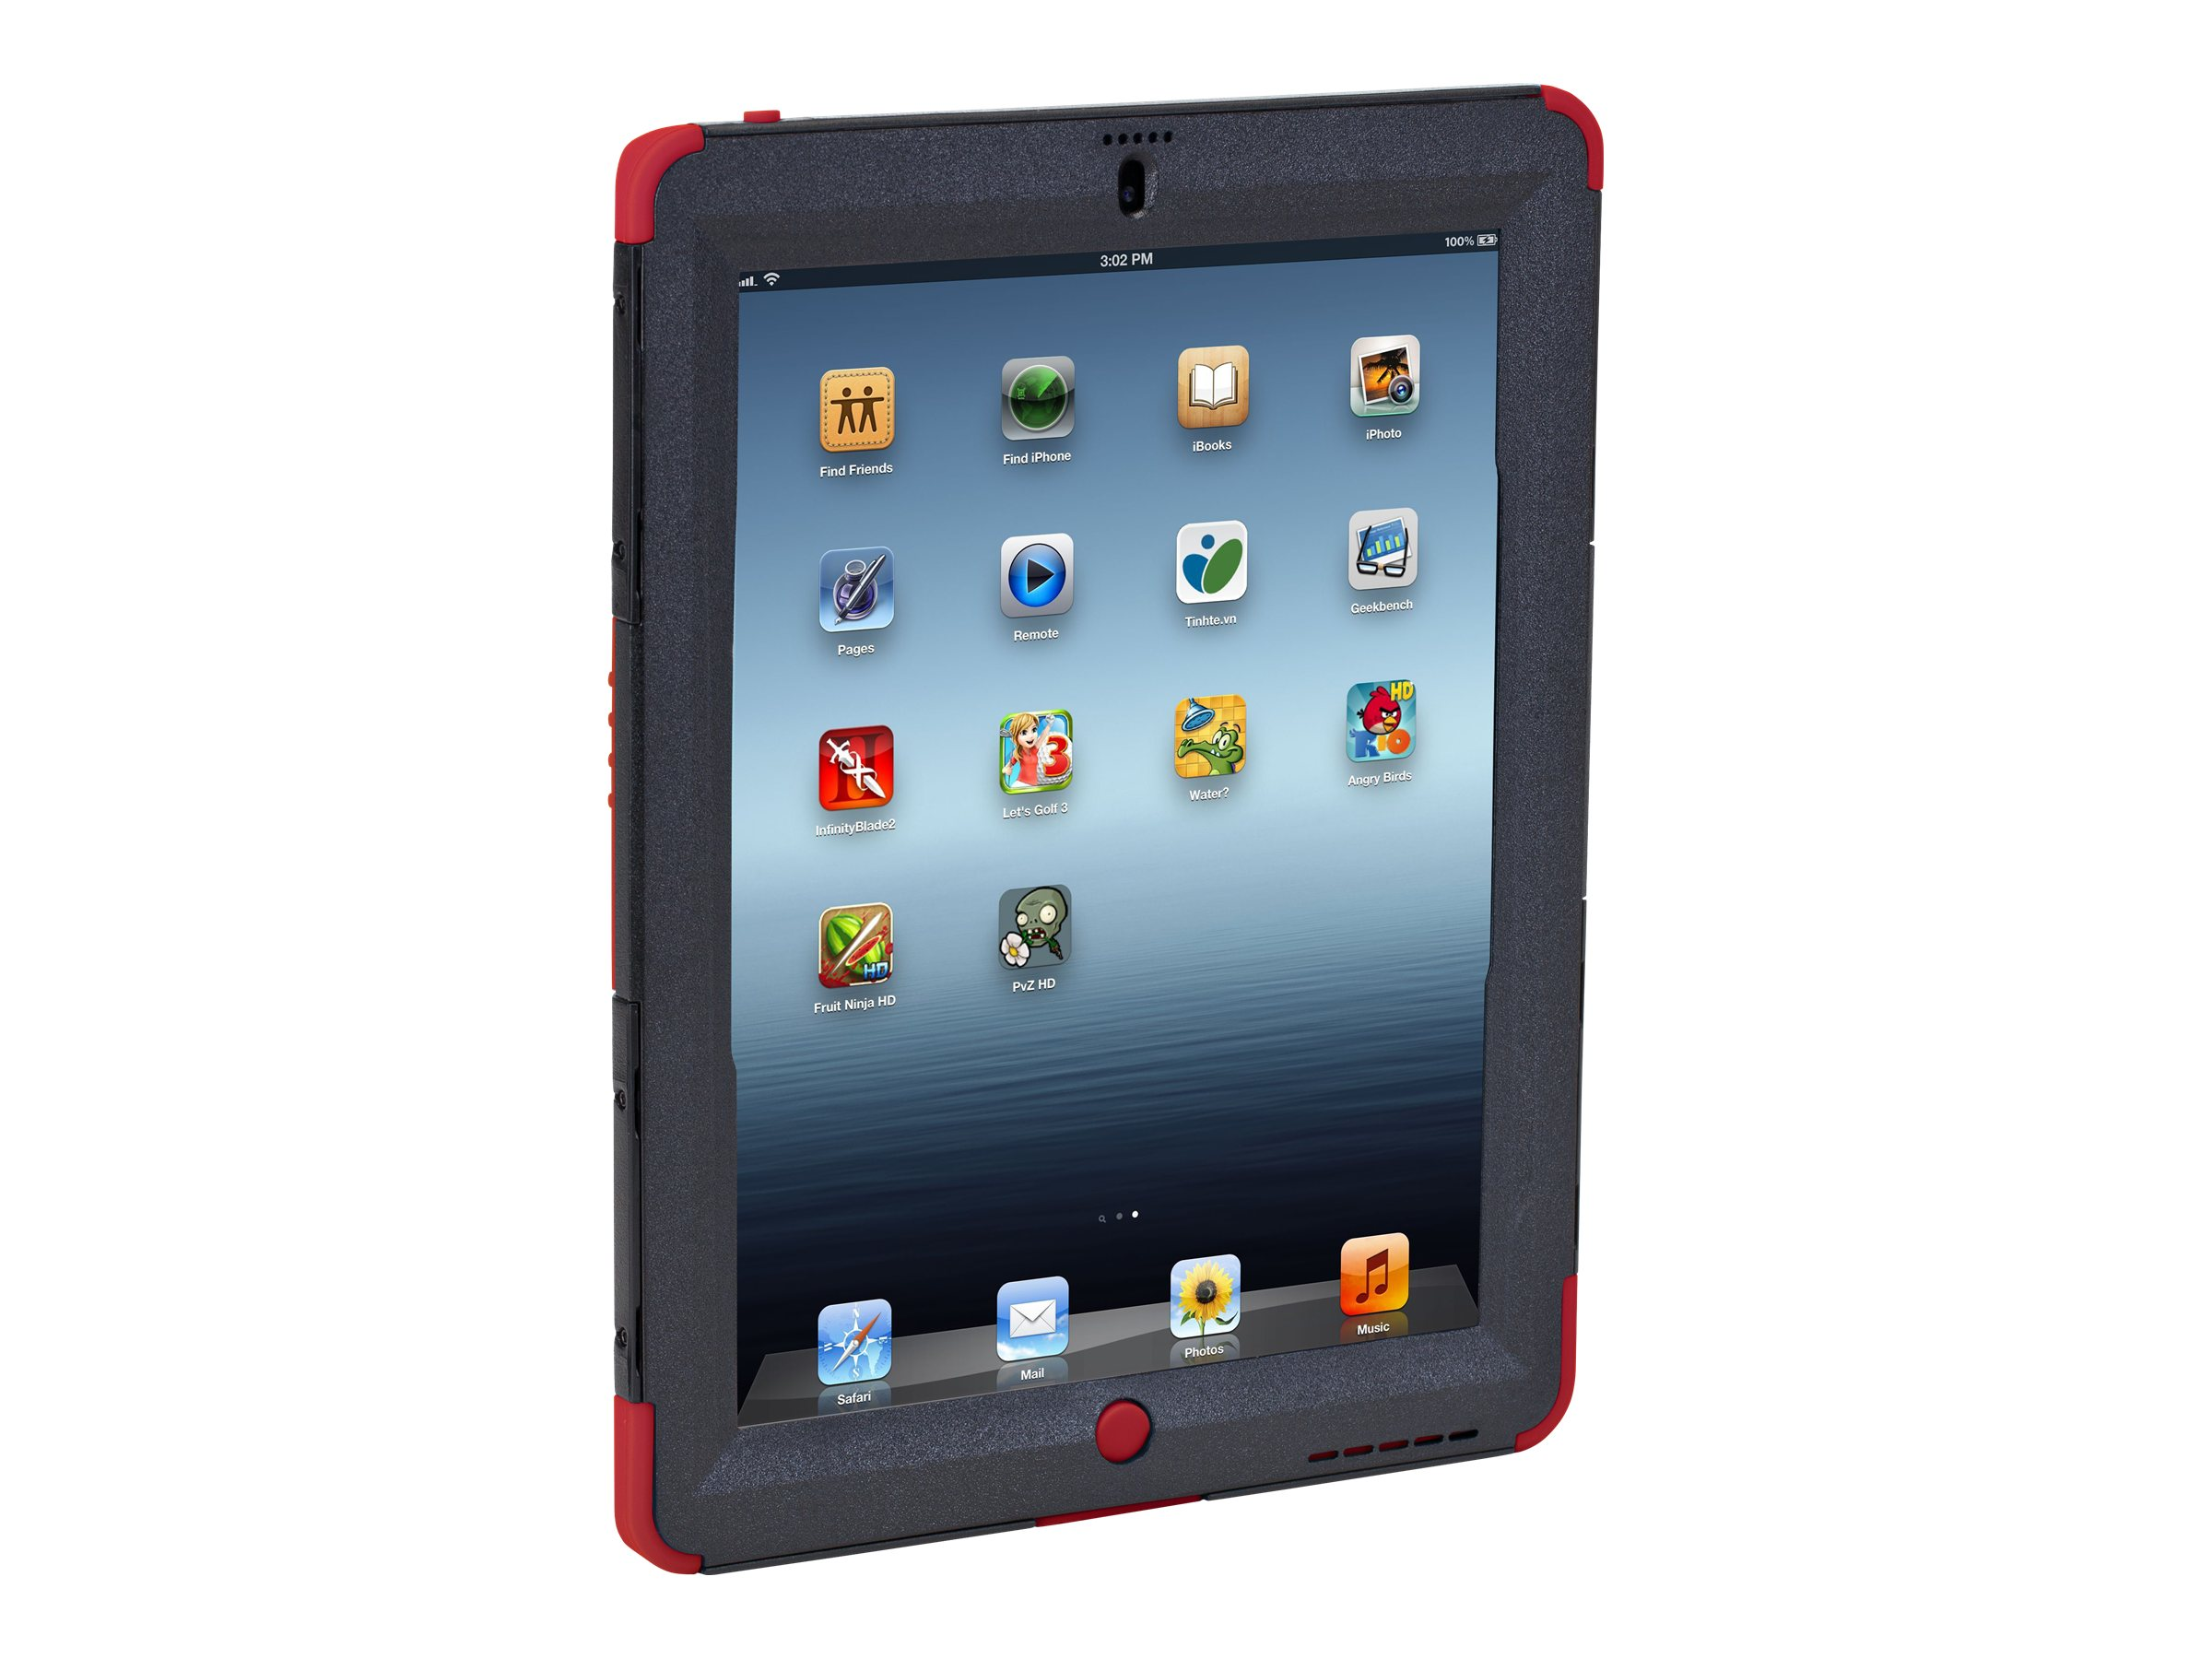 Targus Rugged Max Pro Safeport Case for iPad 3 4, Red